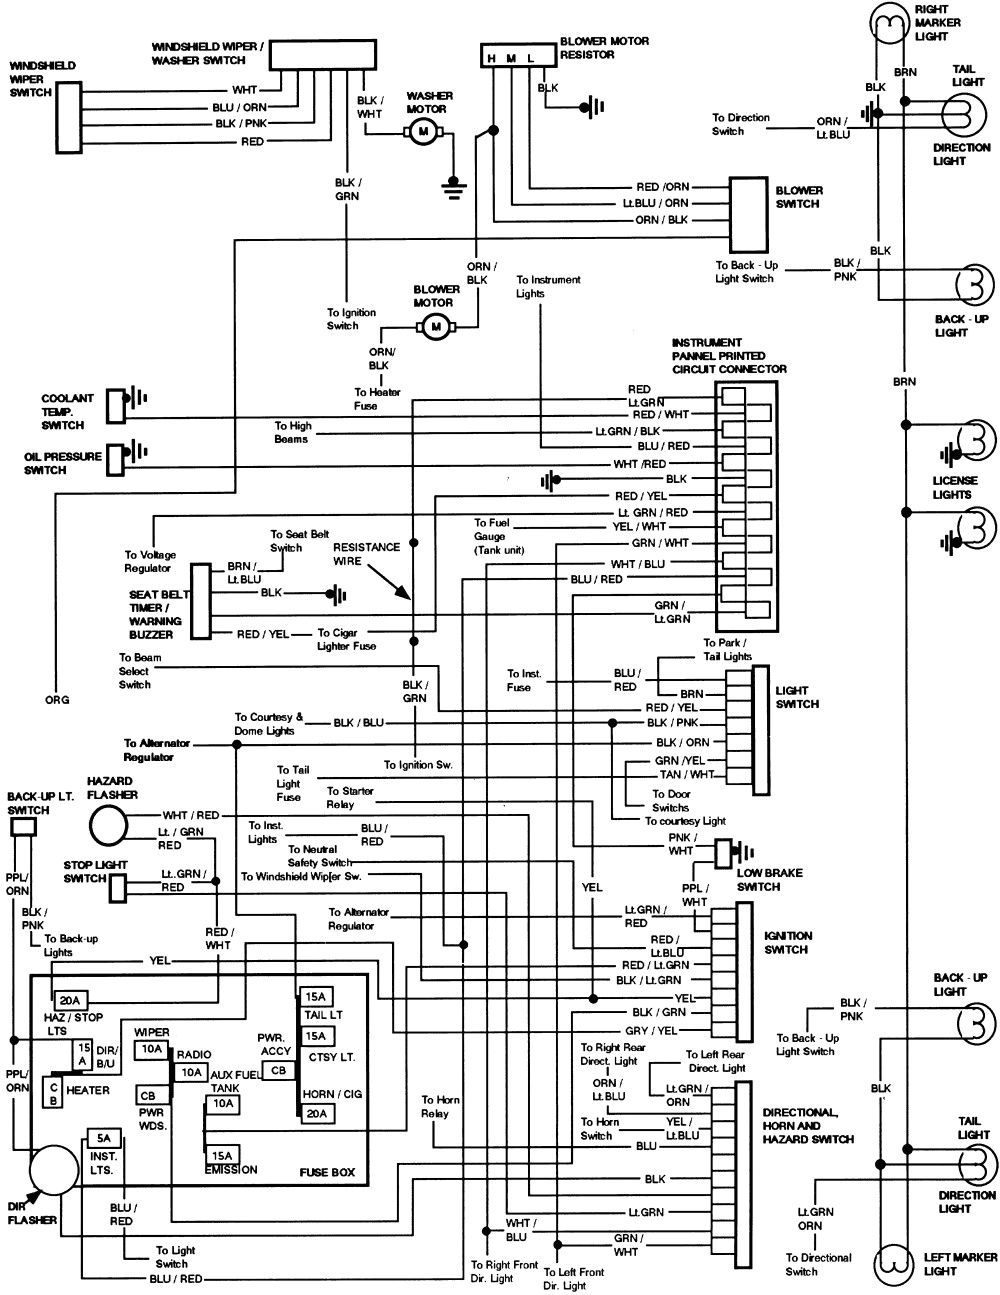 2007 ford ignition switch wiring diagram wiring diagram post 2007 ford f150 wiring diagram pdf 2007 ford f150 wiring diagram